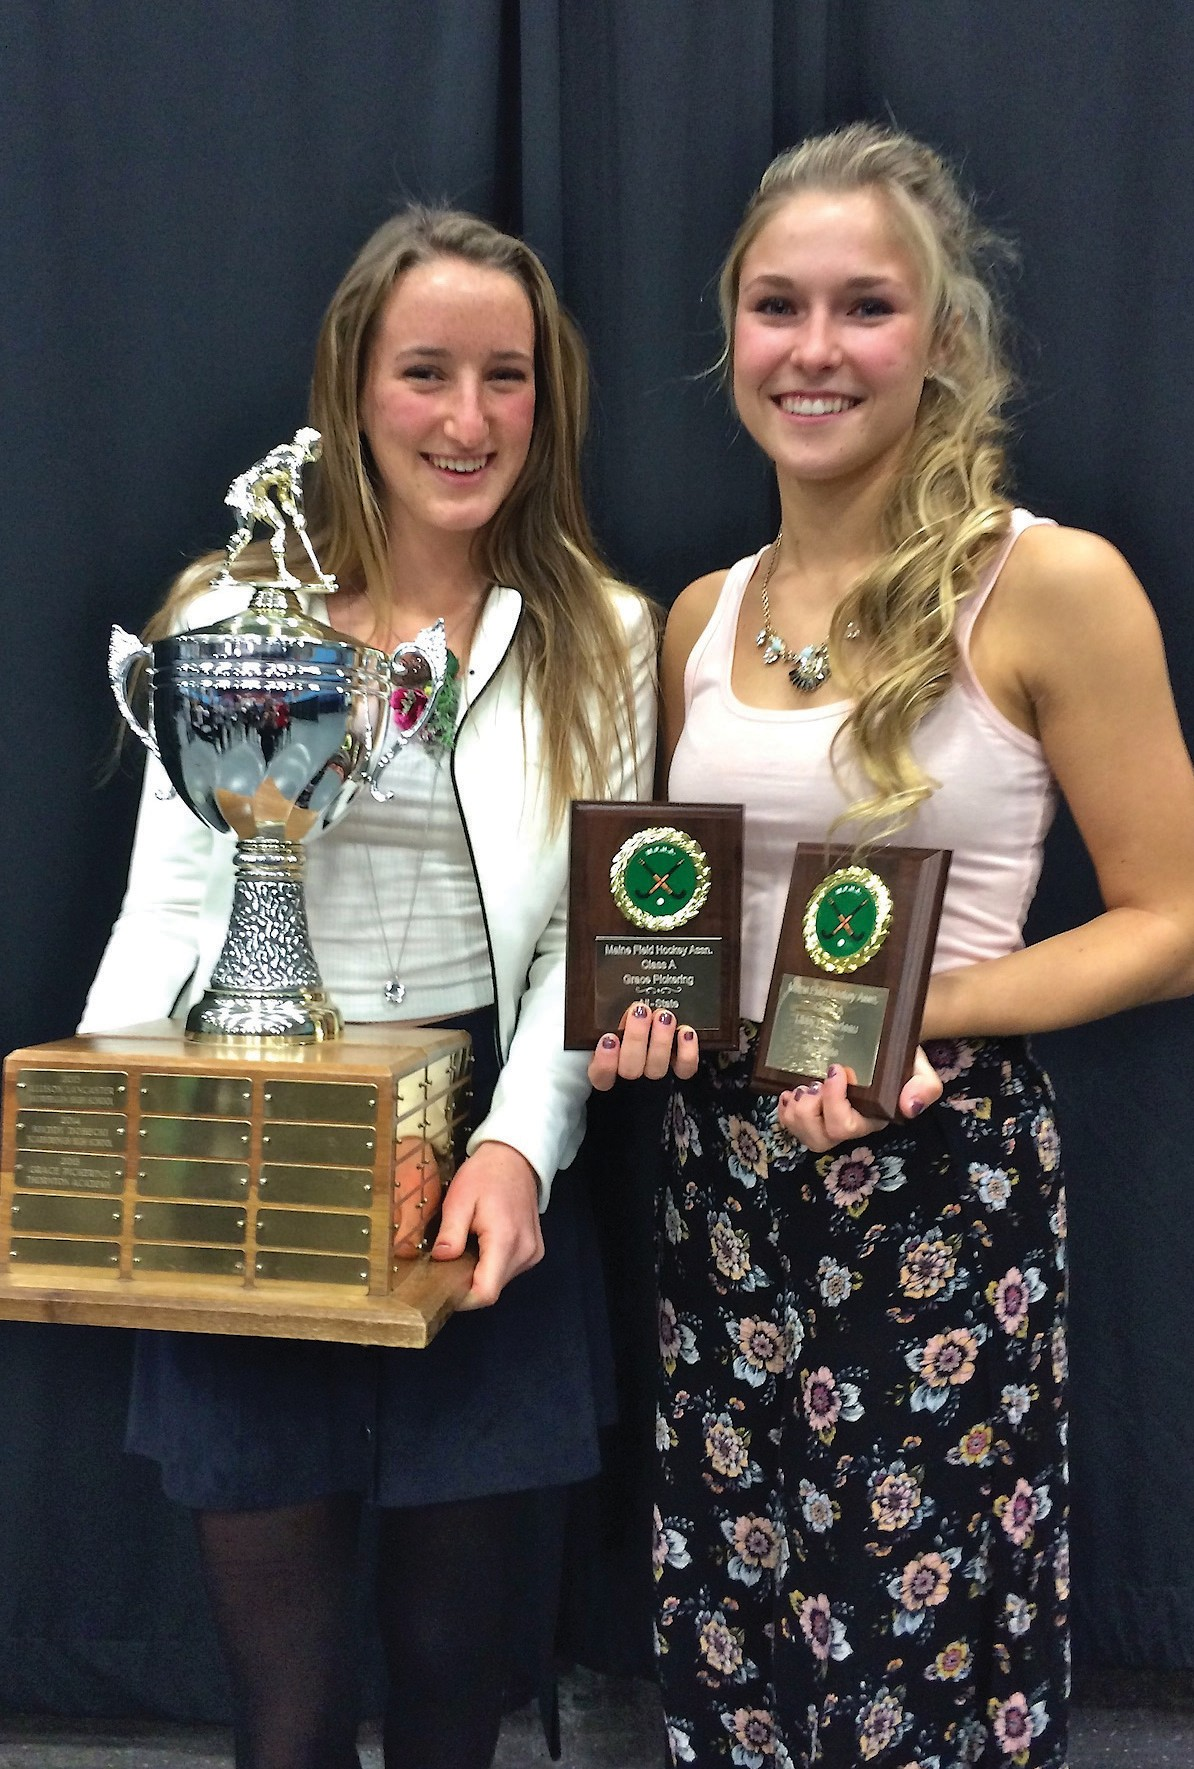 Thornton Academy's Grace Pickering (left) and Libby Pomerleau pose at the Maine Field Hockey banquet on Sunday. Pickering was named Miss Maine Field Hockey, while Pomerleau was named to the All-State team.